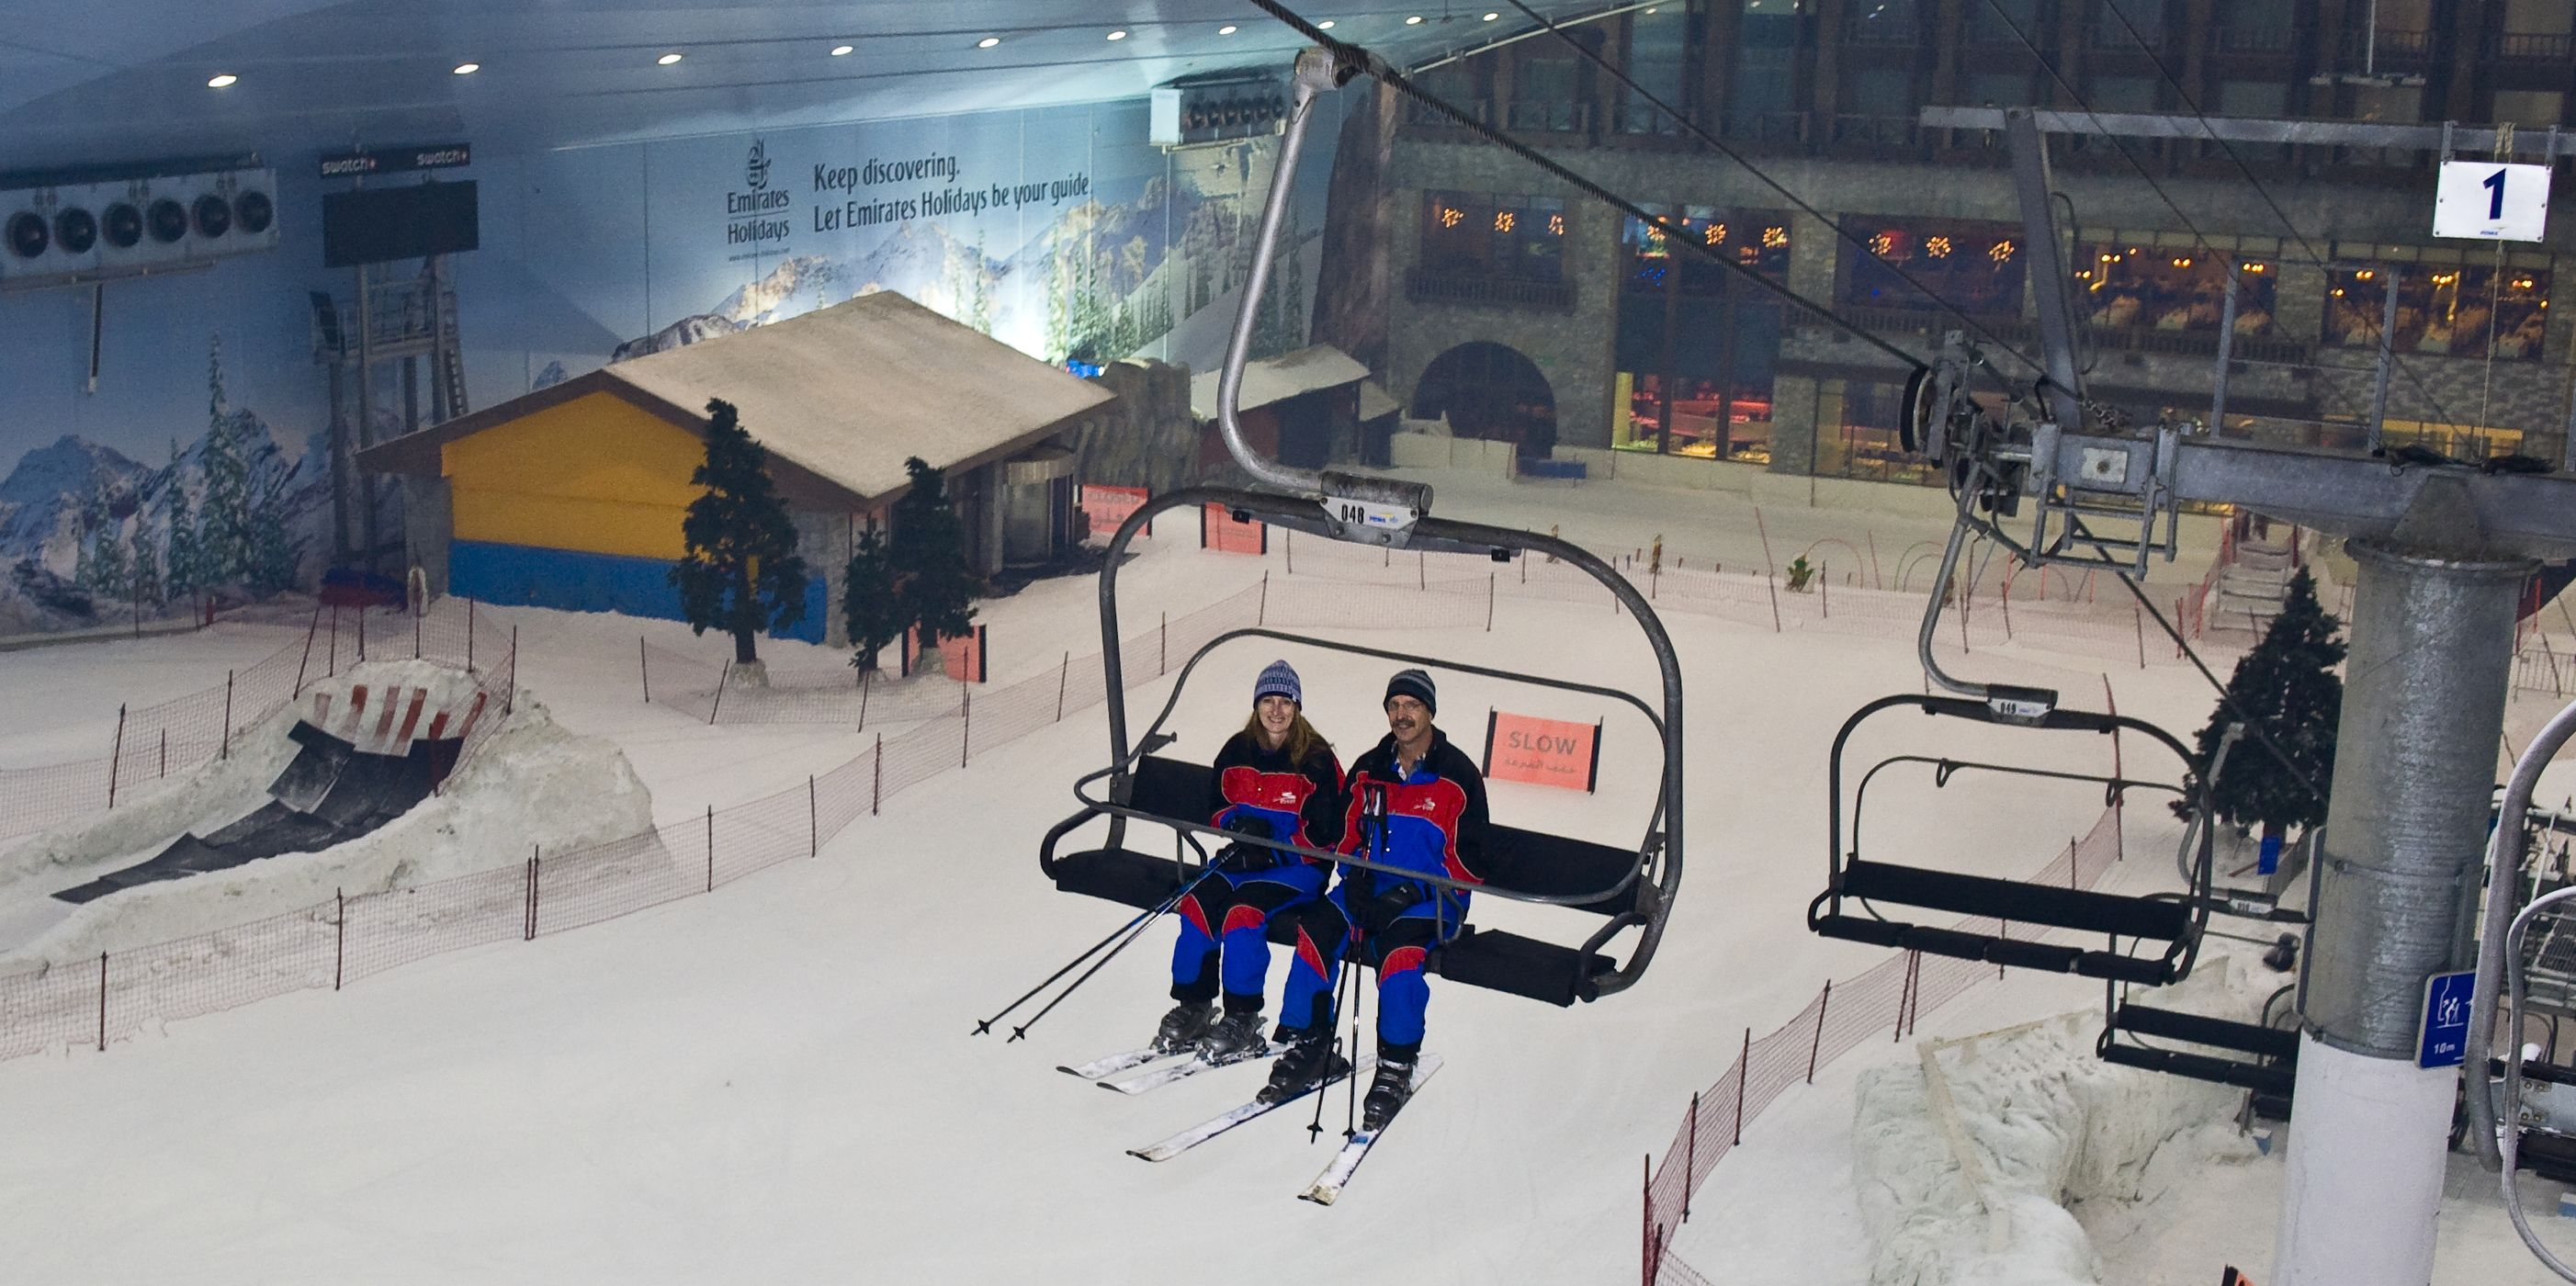 Couple on a chair lift at Ski